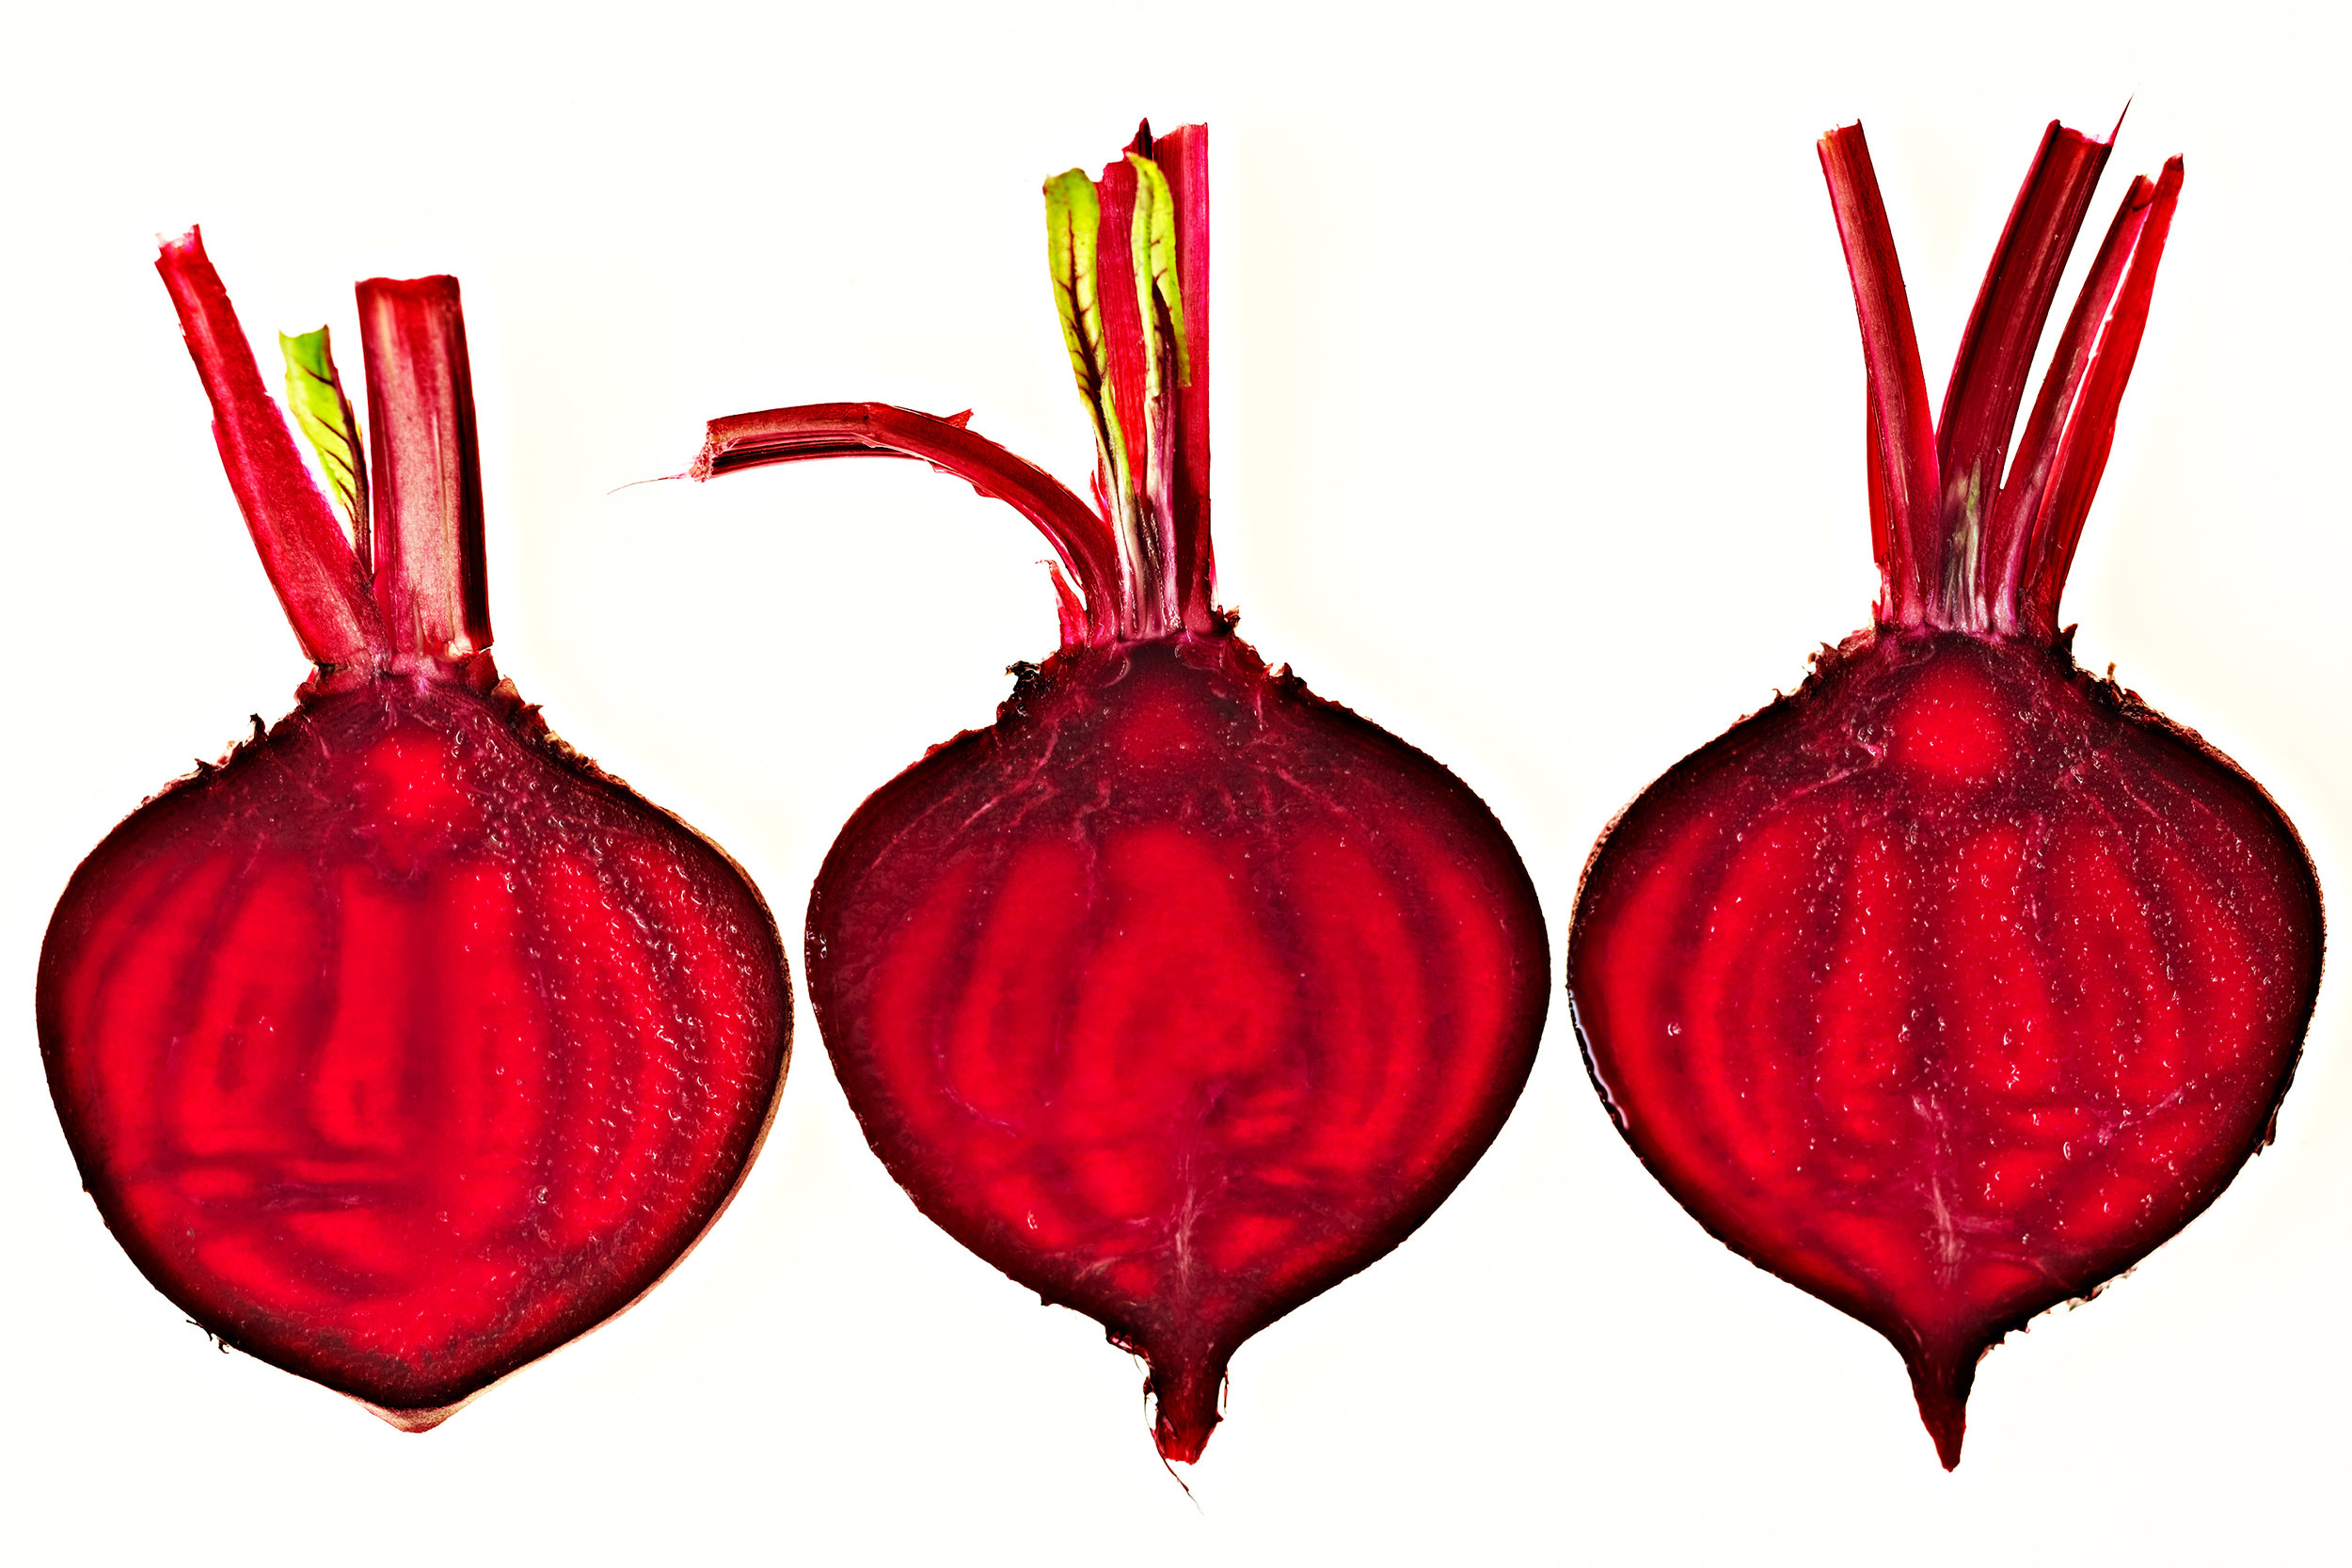 Overhead shot of sliced red beets on white